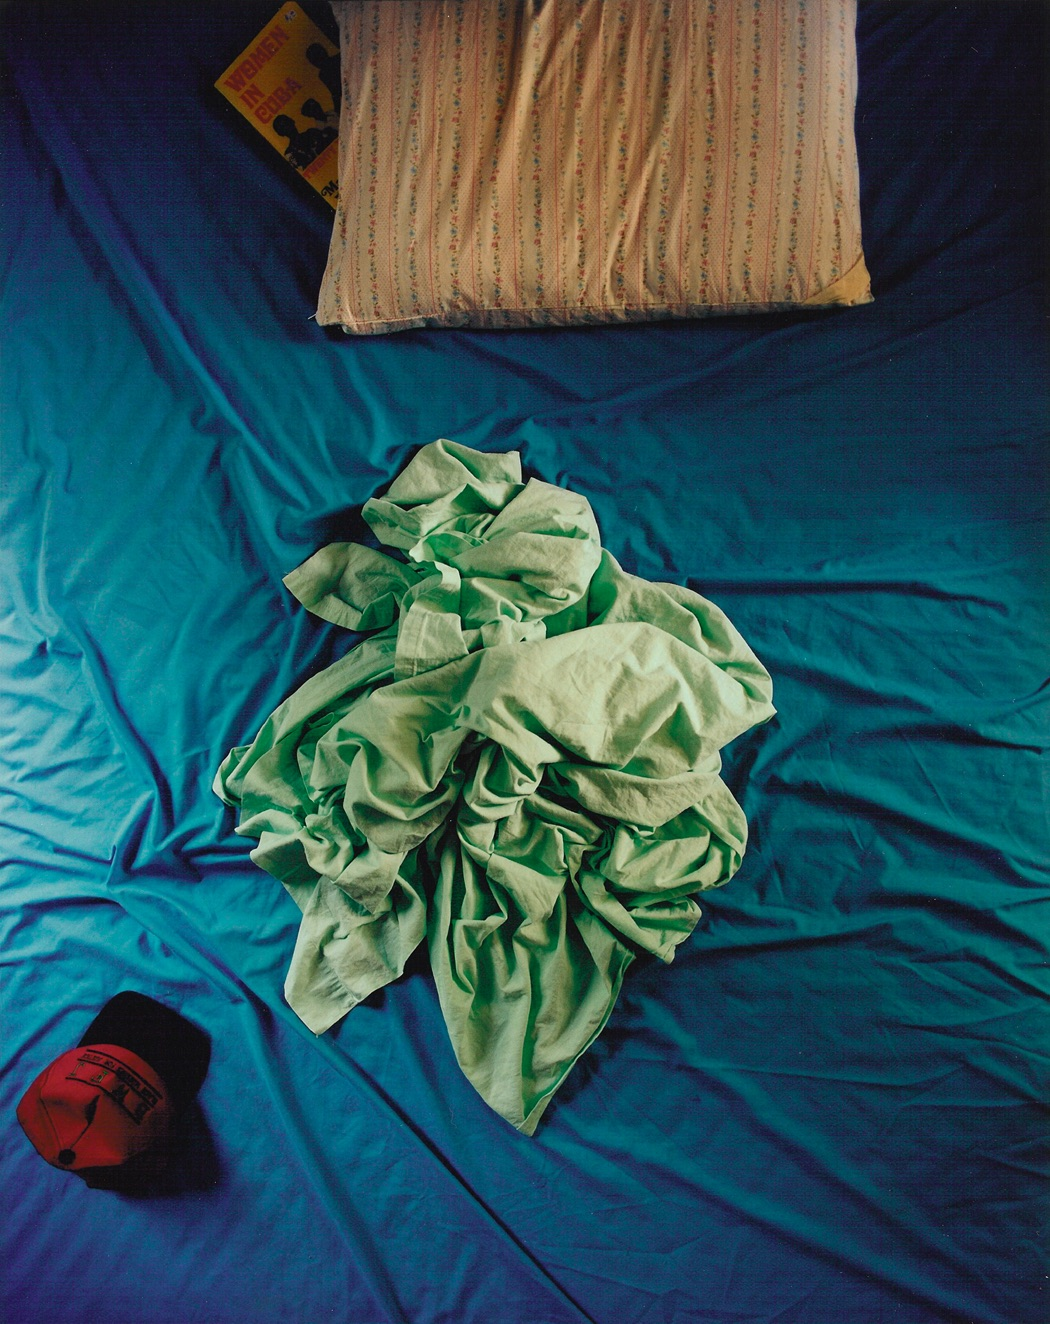 A bird's eye view of a crumpled sea-foam green sheet, on top of a bed encased in a wrinkled blue sheet. A red hat sits on the beds next to the sheet, alongside a patterned pillow with a book partially tucked under its left edge.